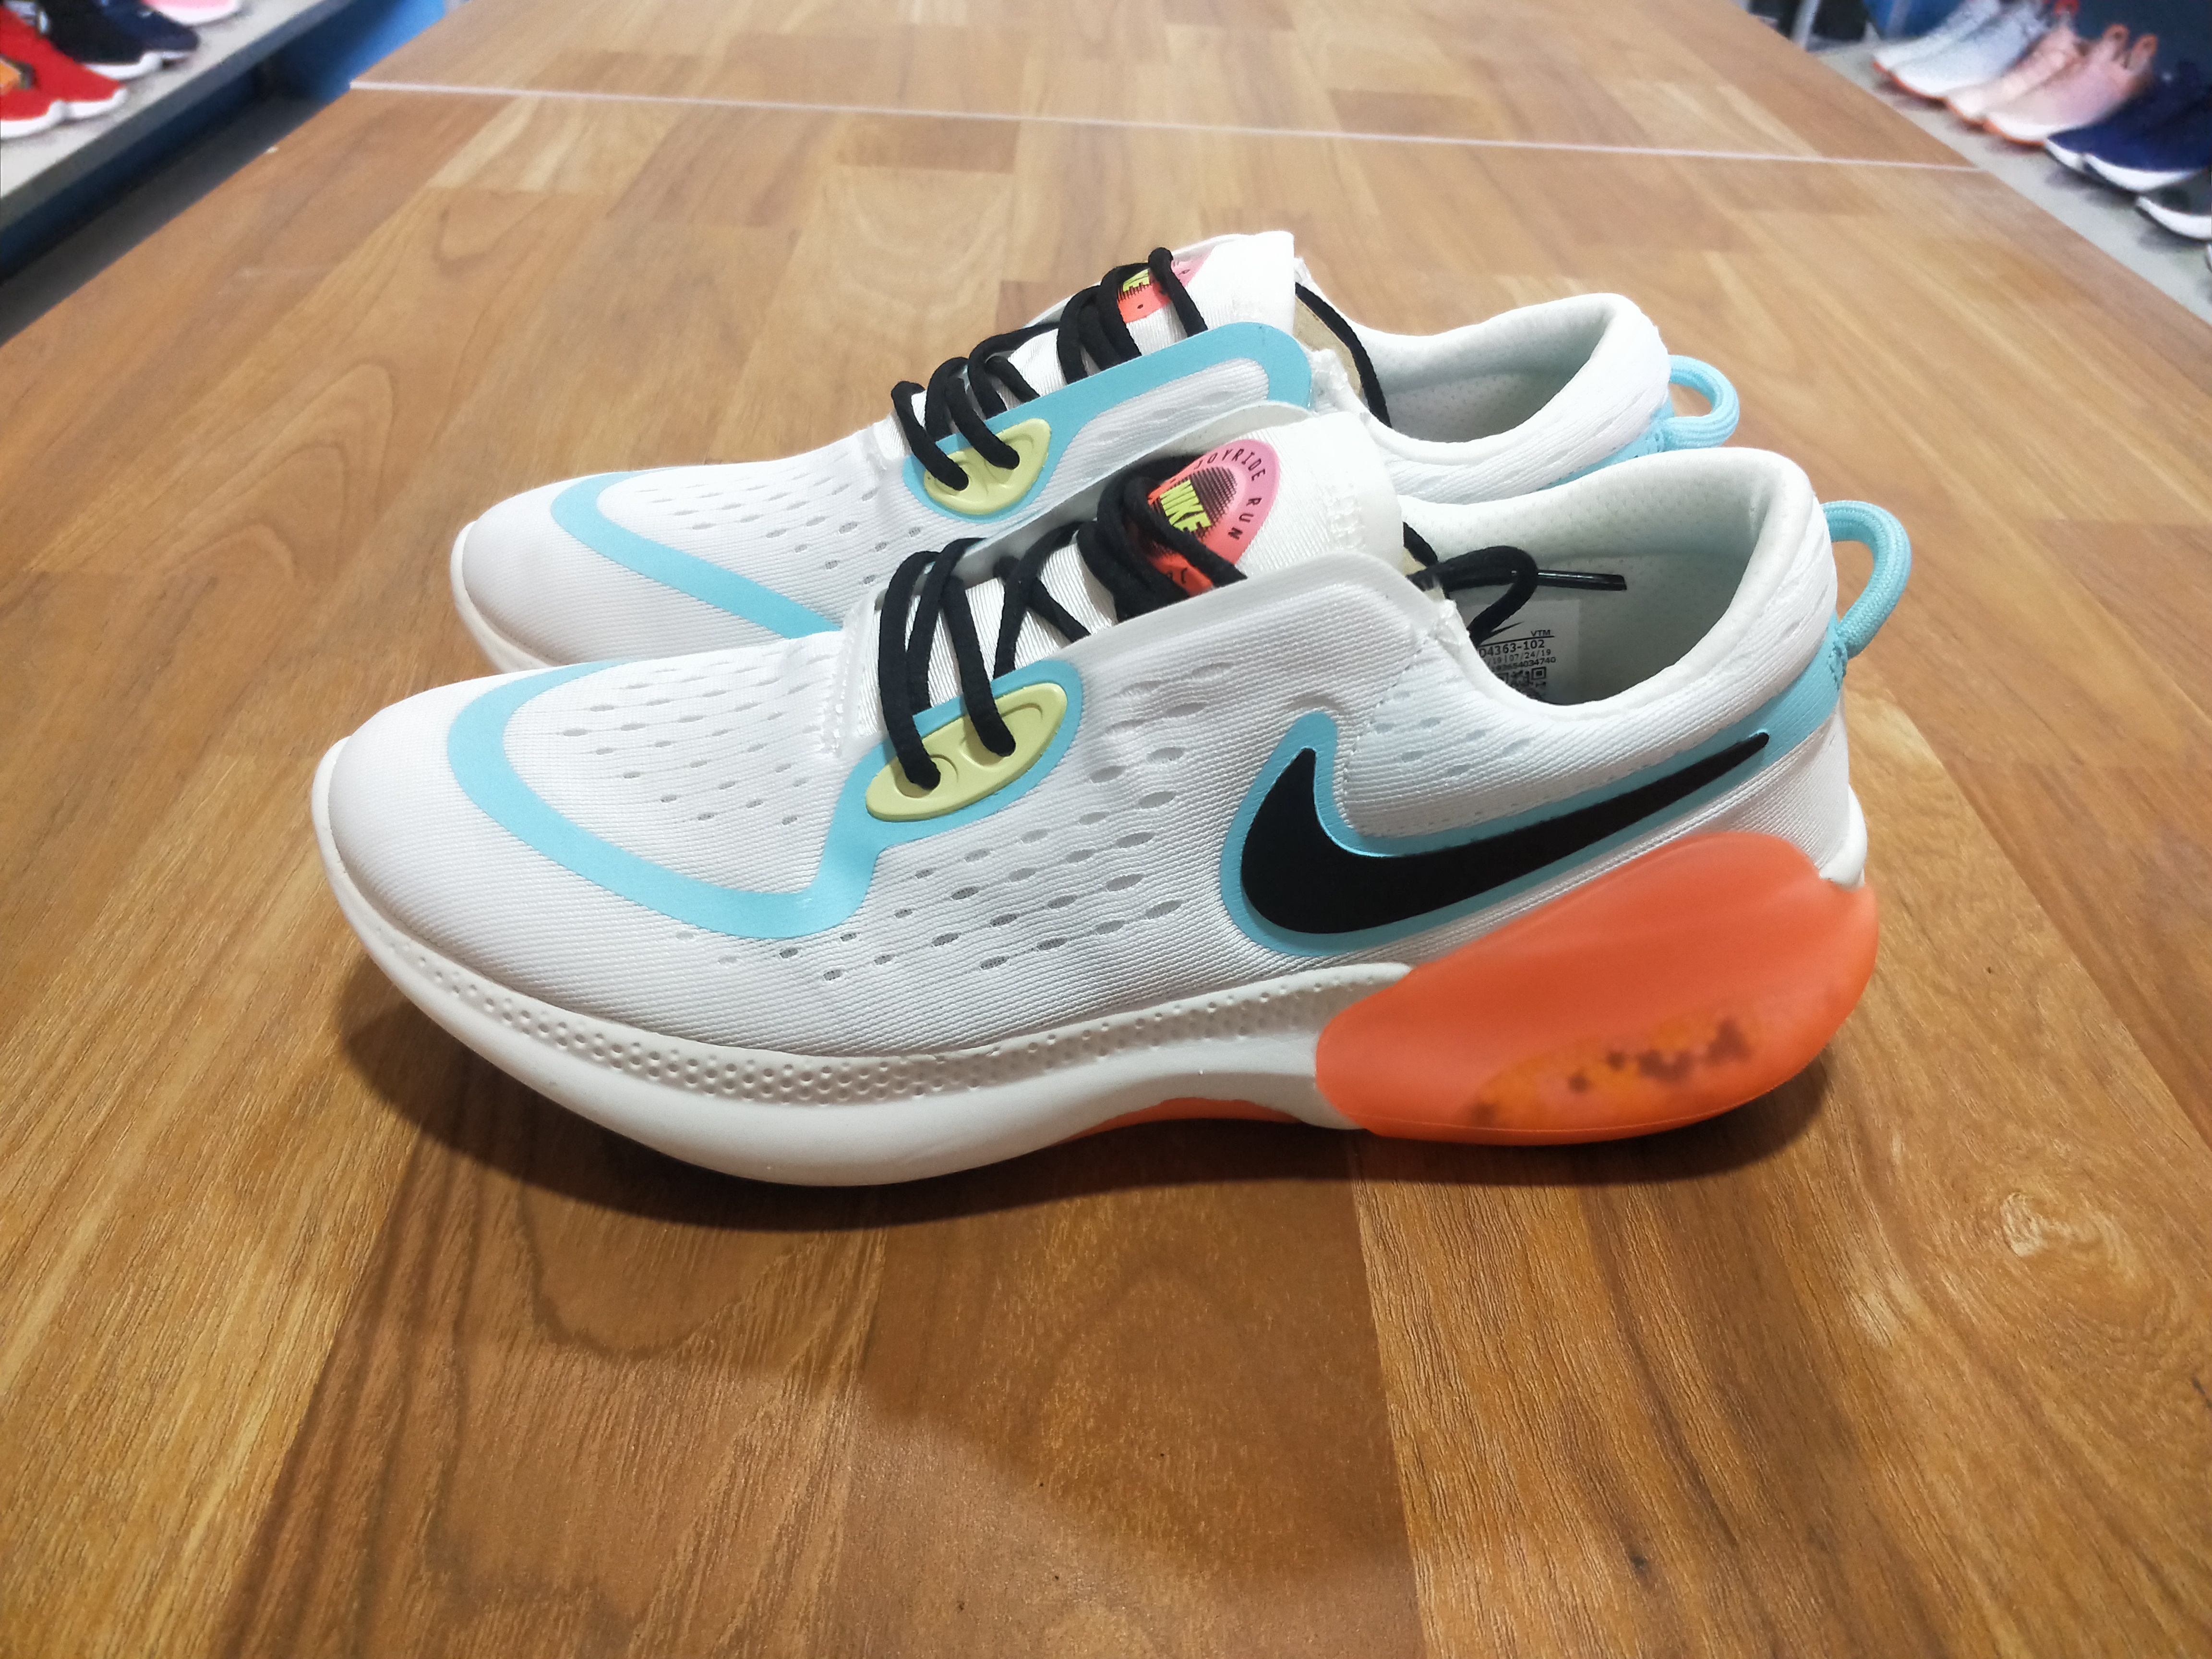 2020 Nike Joyride Run FK White Jade Blue Black Orange For Women